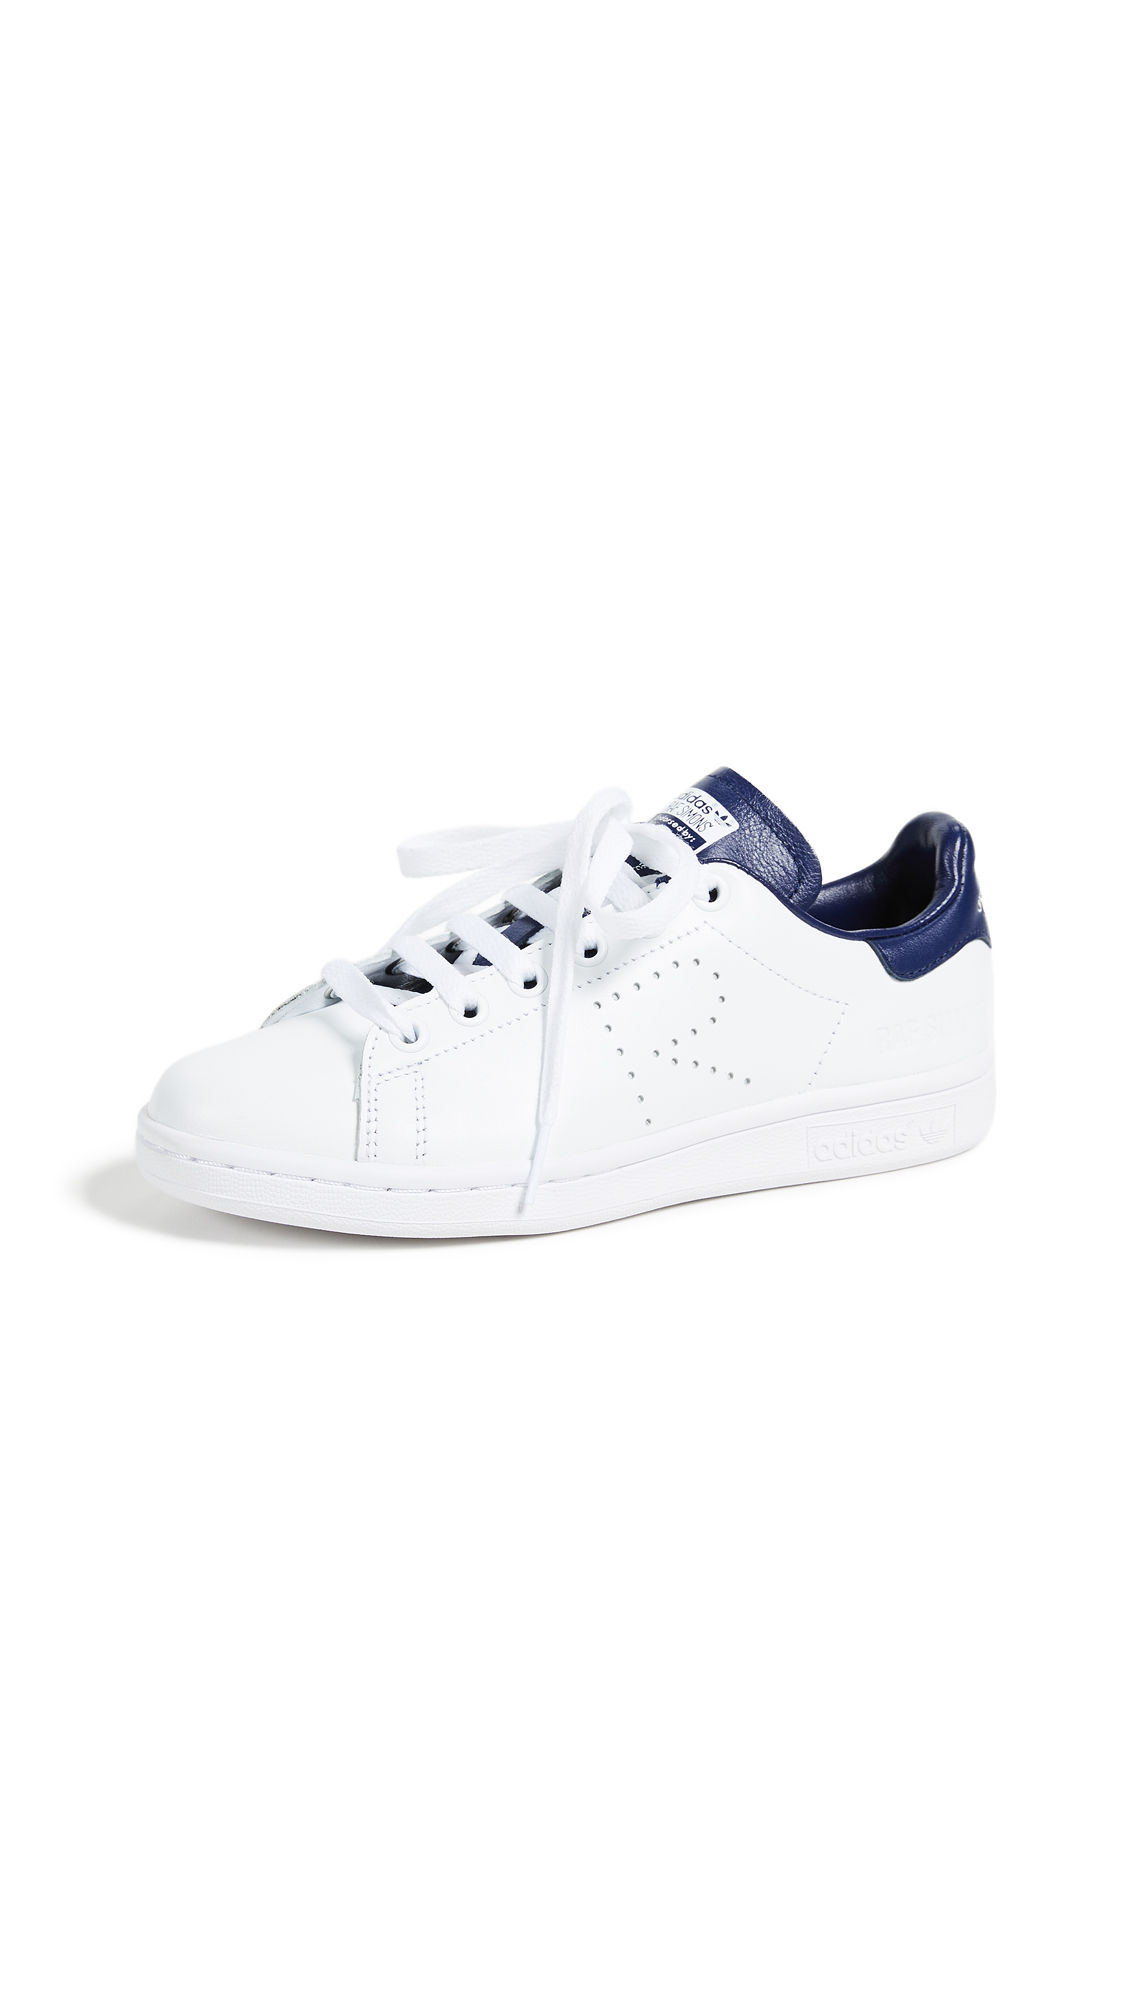 Adidas Raf Simons Stan Smith Sneakers - White/Night Sky/White